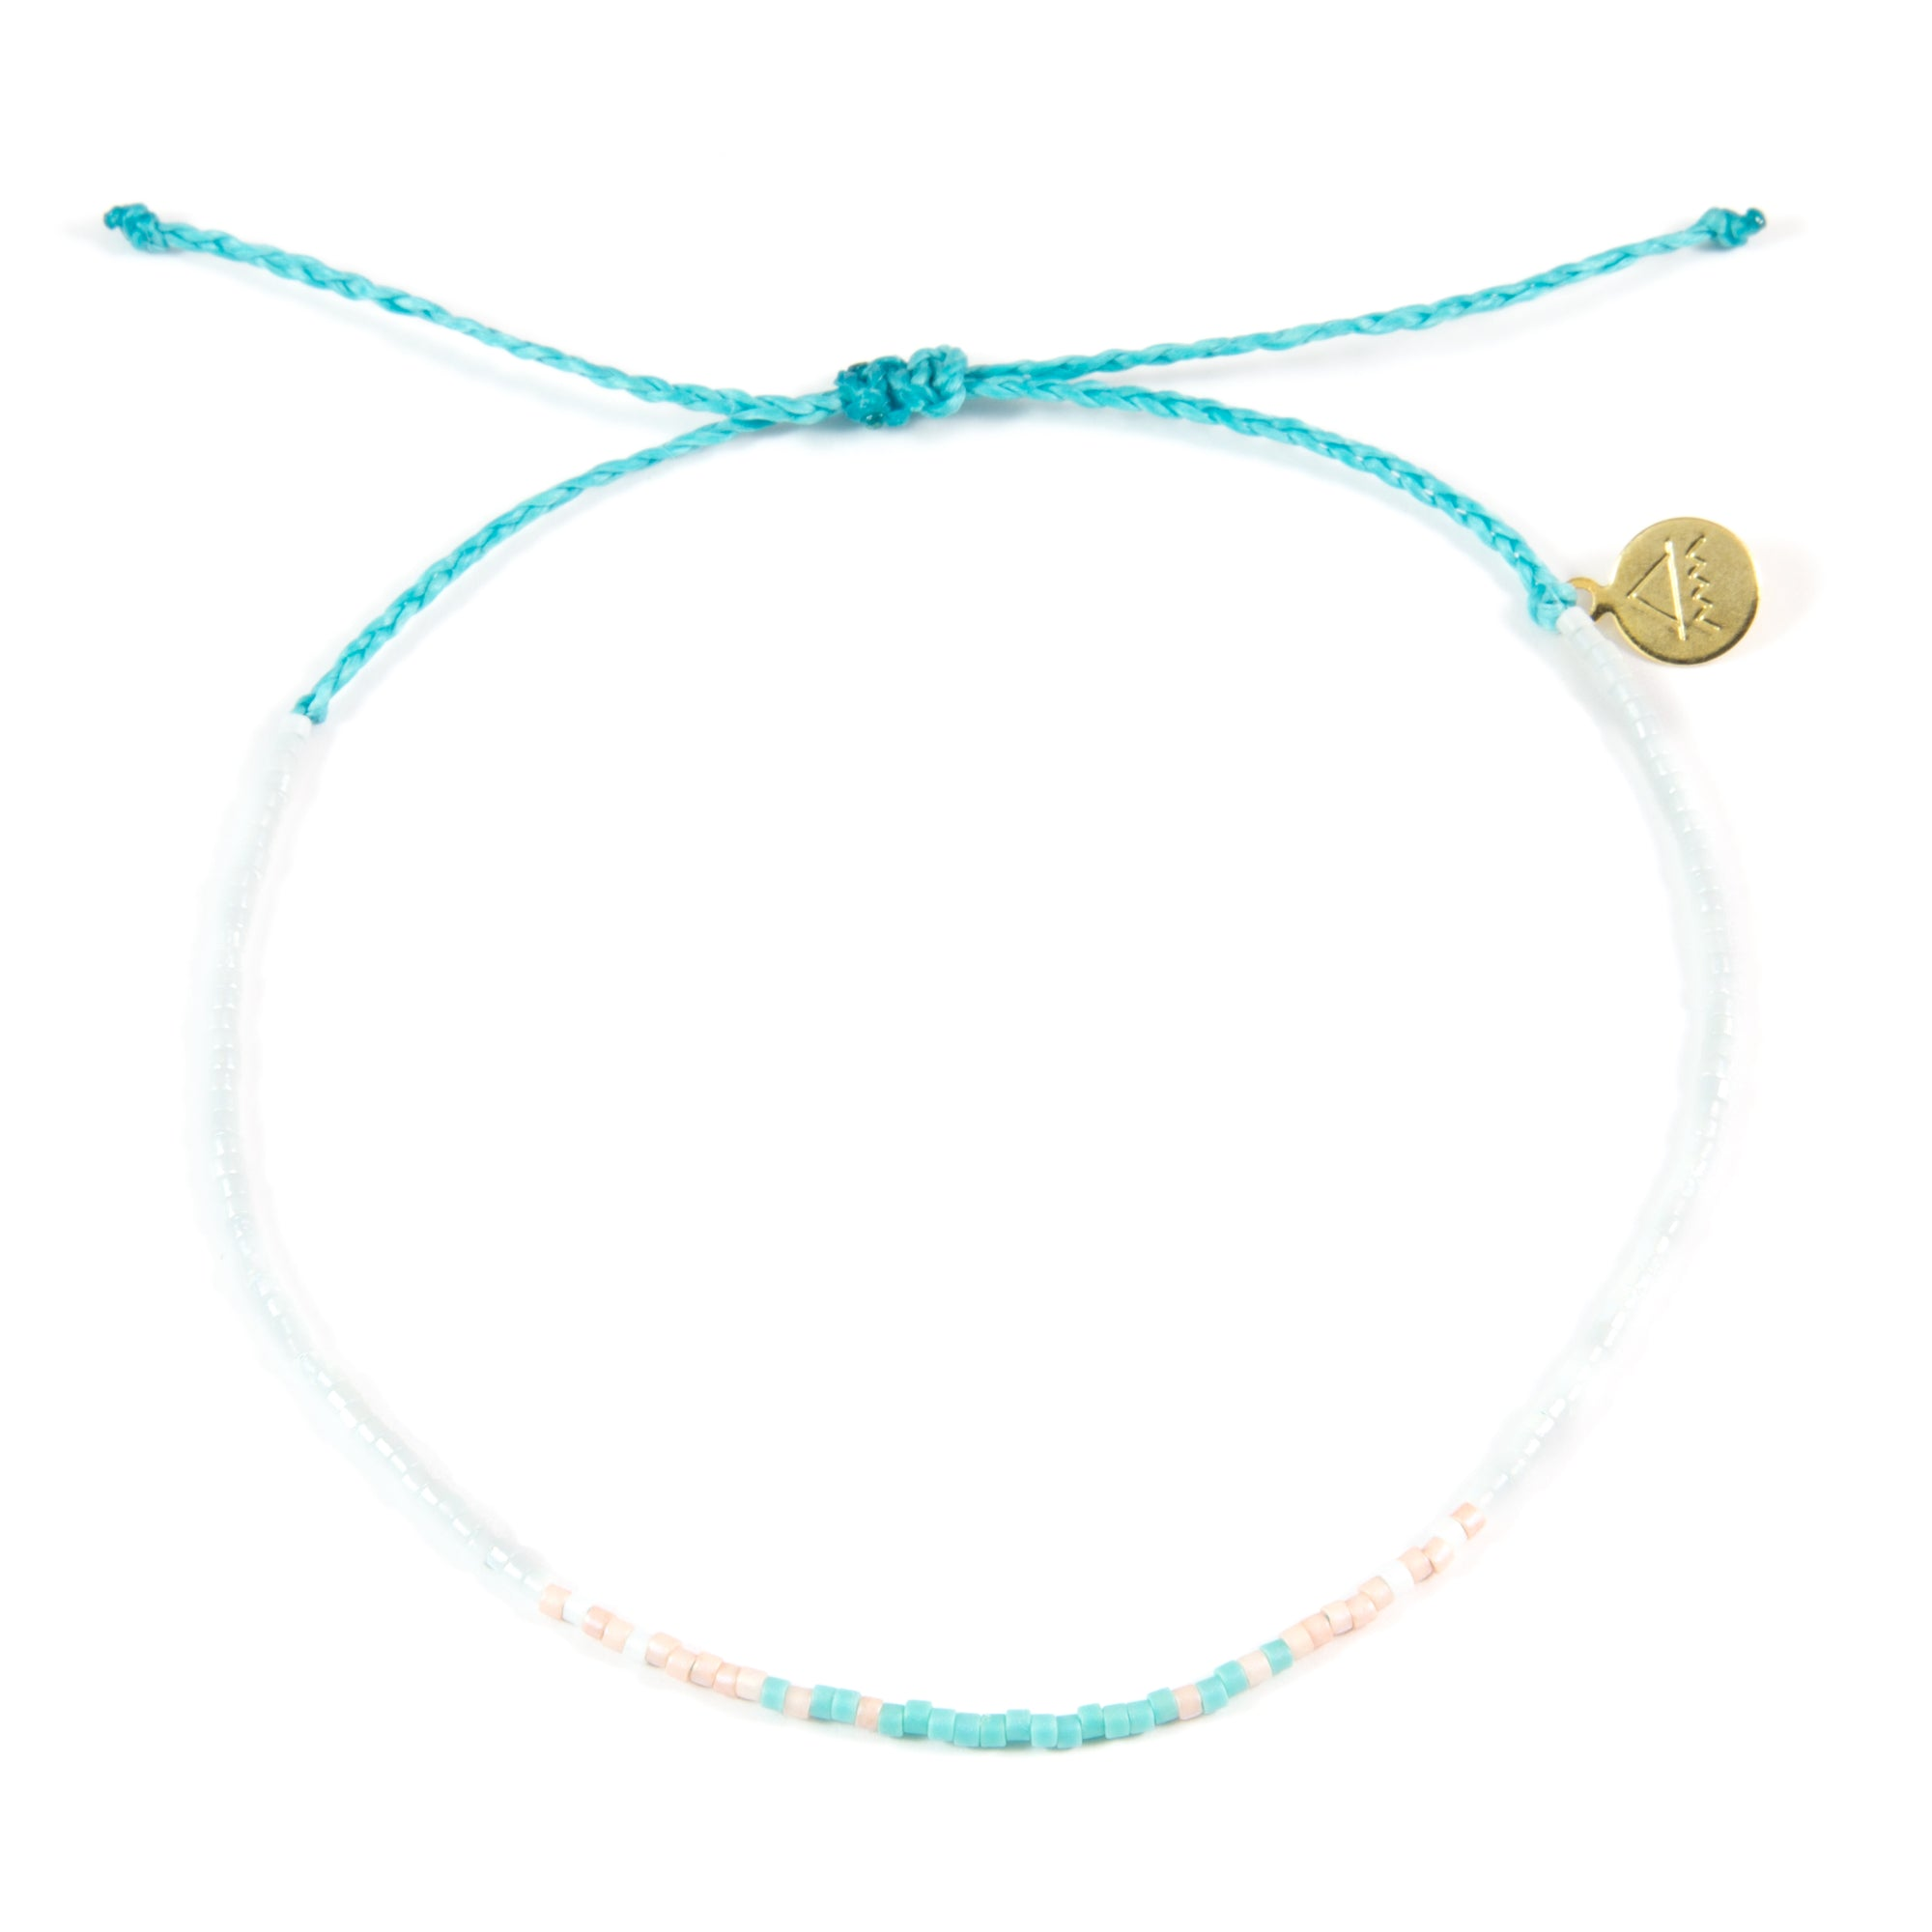 Teal & Coral Ombre Anklet